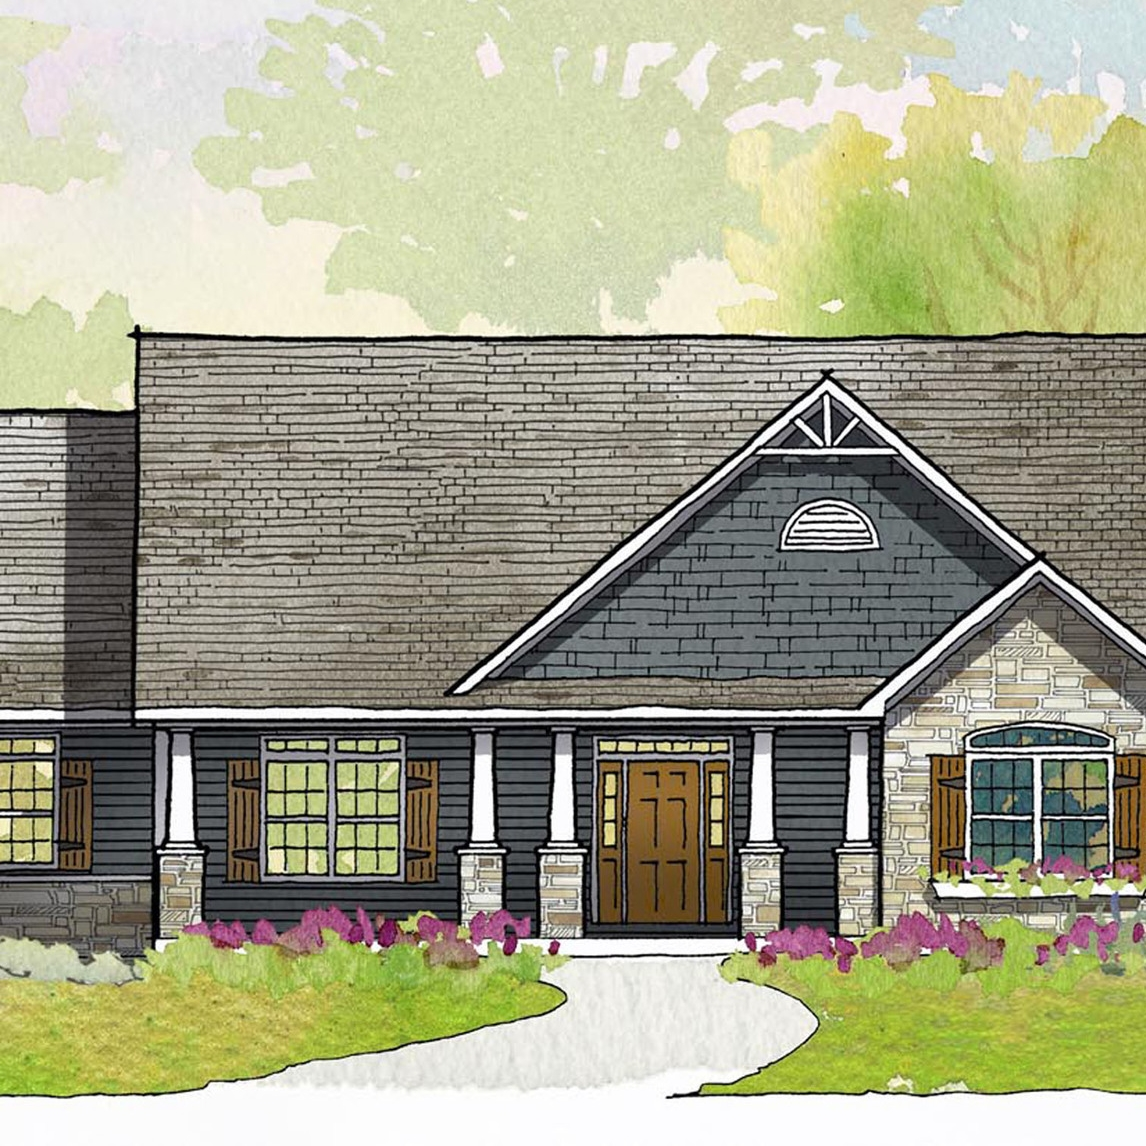 The Cottage - Color Rendering.jpg